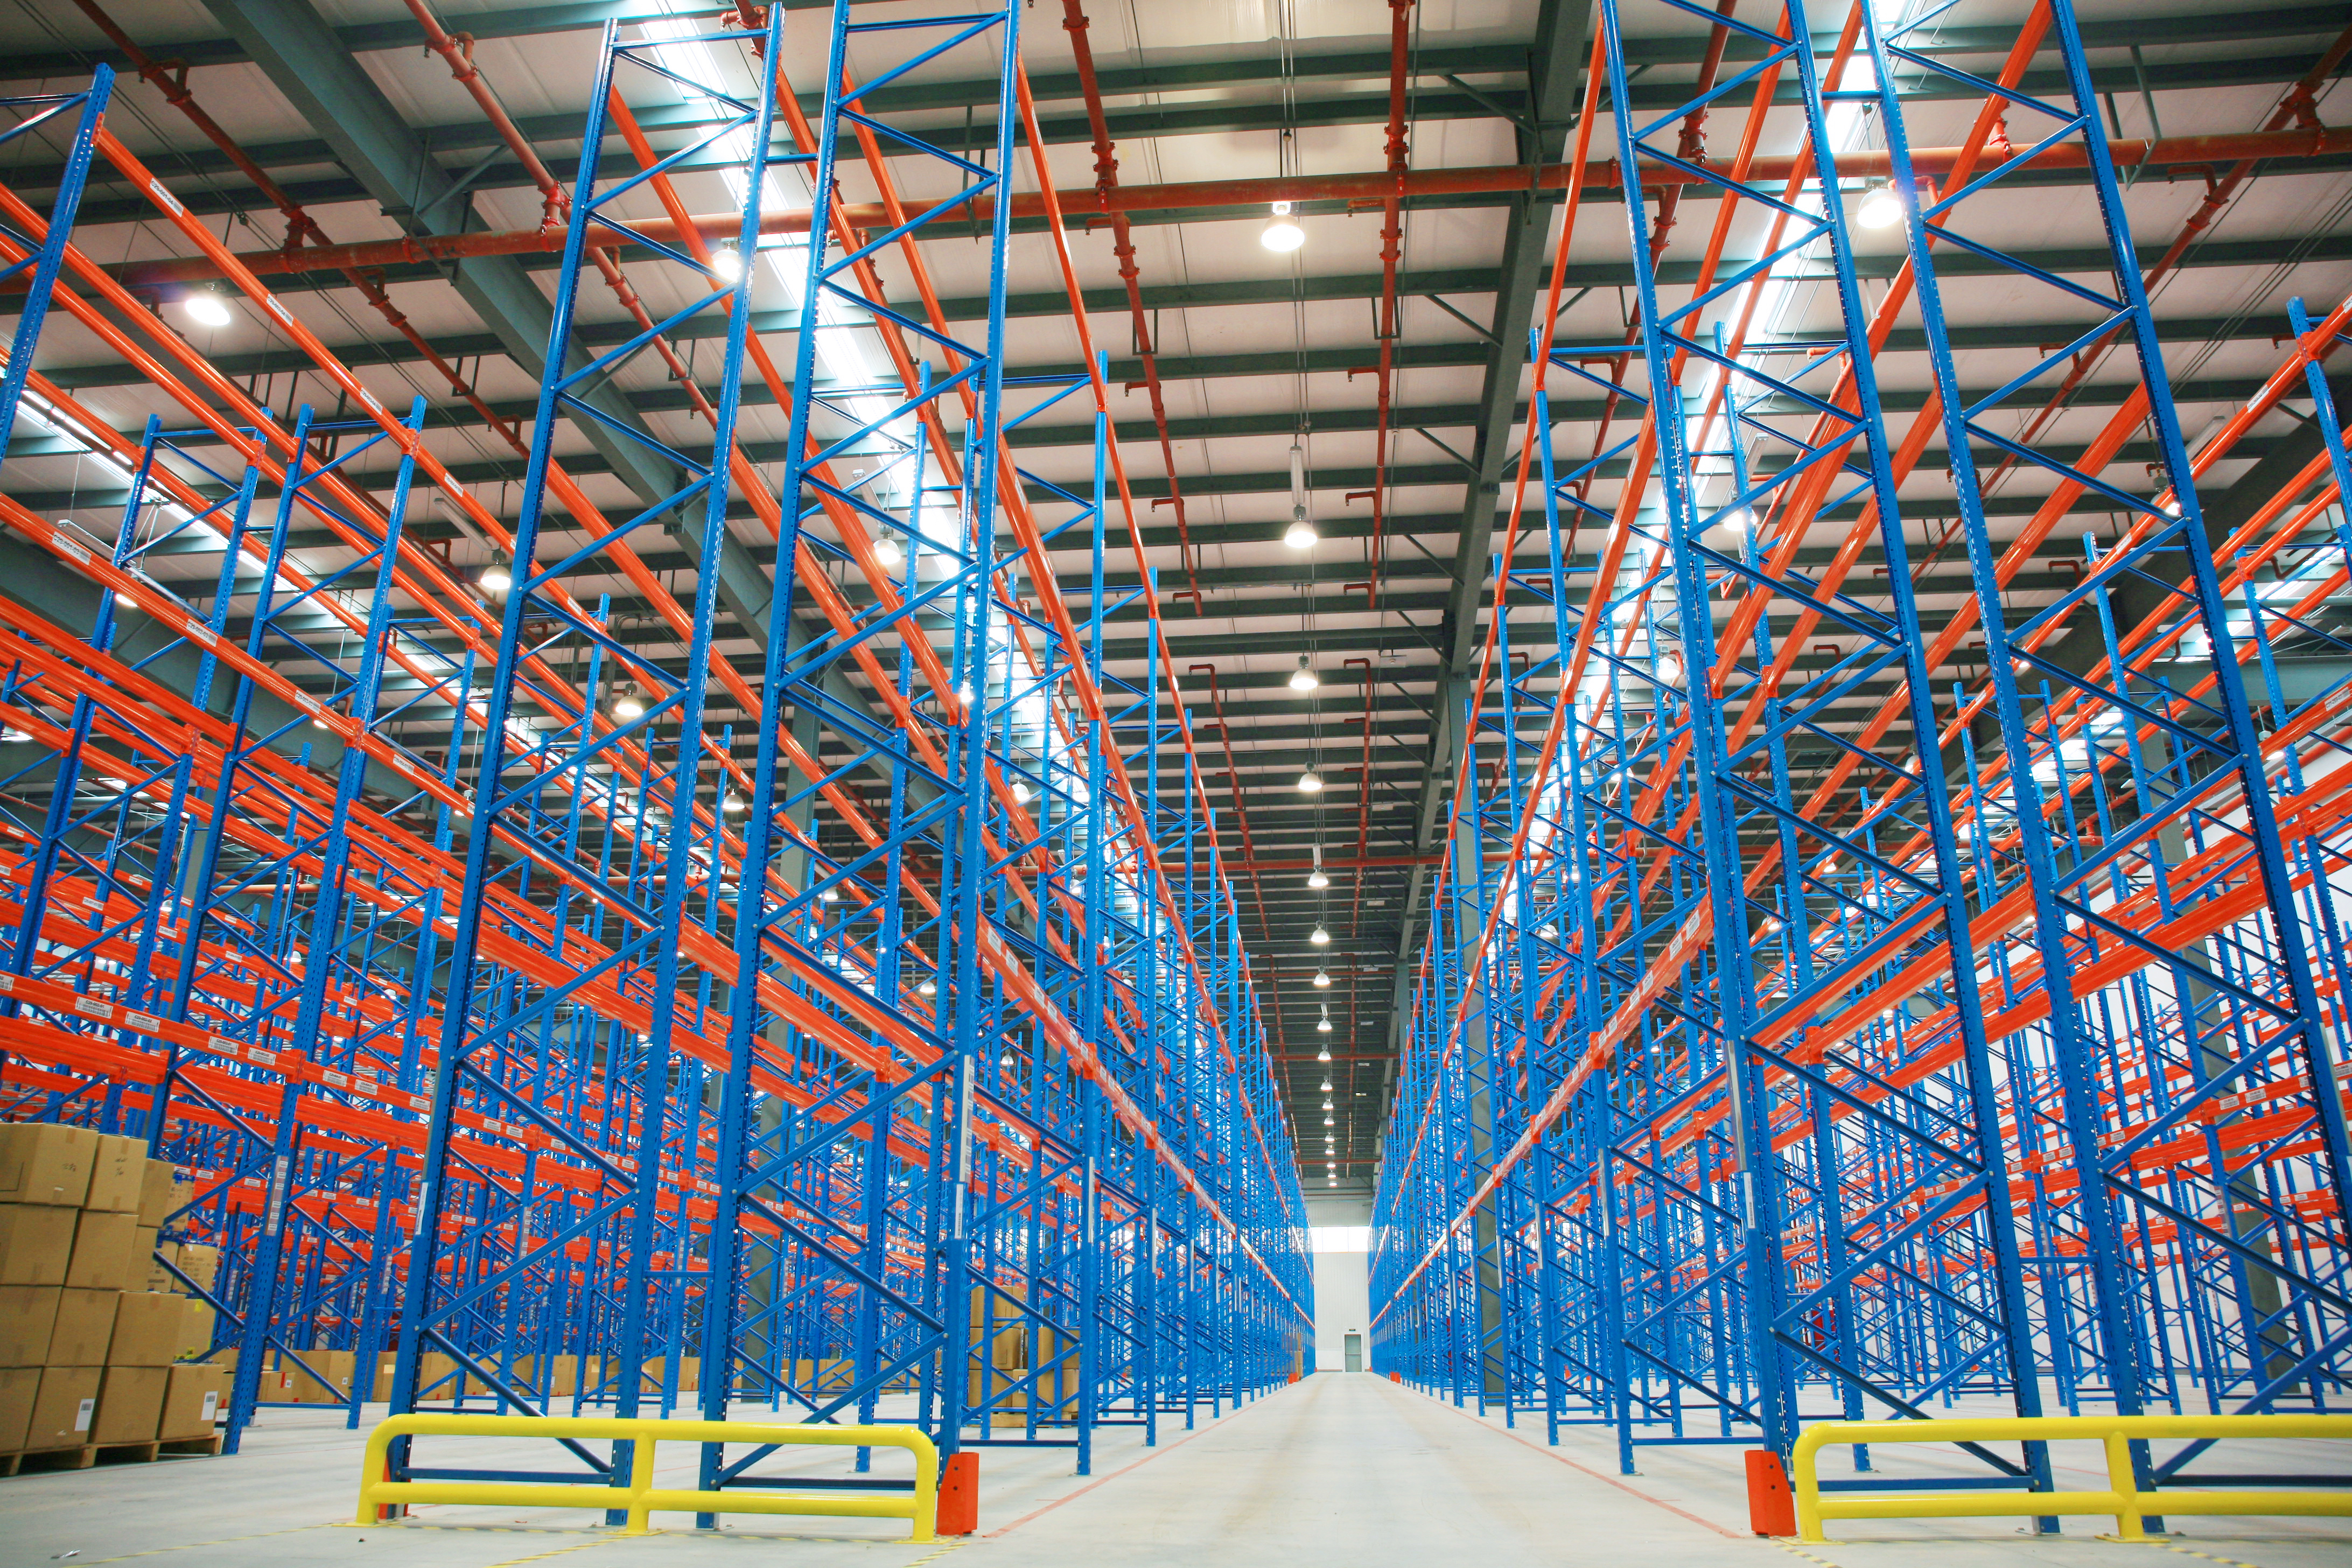 5 Factors to Consider Before Buying Warehouse Shelving